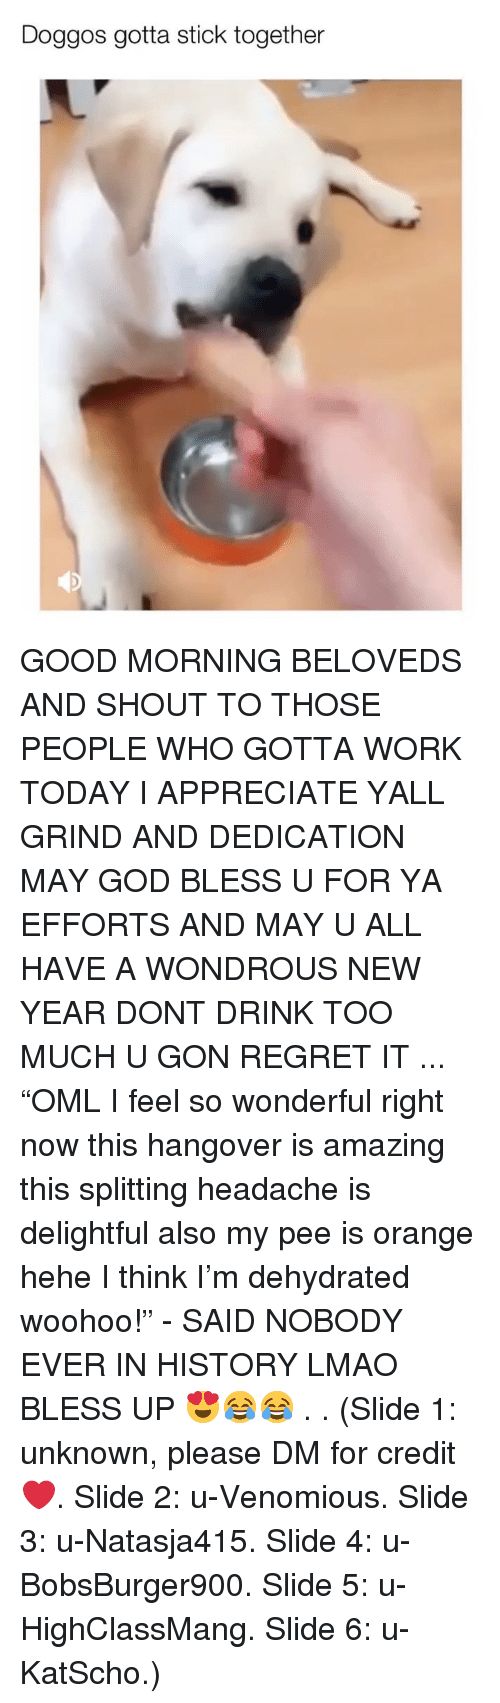 """Bless up: Doggos gotta stick together GOOD MORNING BELOVEDS AND SHOUT TO THOSE PEOPLE WHO GOTTA WORK TODAY I APPRECIATE YALL GRIND AND DEDICATION MAY GOD BLESS U FOR YA EFFORTS AND MAY U ALL HAVE A WONDROUS NEW YEAR DONT DRINK TOO MUCH U GON REGRET IT ... """"OML I feel so wonderful right now this hangover is amazing this splitting headache is delightful also my pee is orange hehe I think I'm dehydrated woohoo!"""" - SAID NOBODY EVER IN HISTORY LMAO BLESS UP 😍😂😂 . . (Slide 1: unknown, please DM for credit ❤️. Slide 2: u-Venomious. Slide 3: u-Natasja415. Slide 4: u-BobsBurger900. Slide 5: u-HighClassMang. Slide 6: u-KatScho.)"""